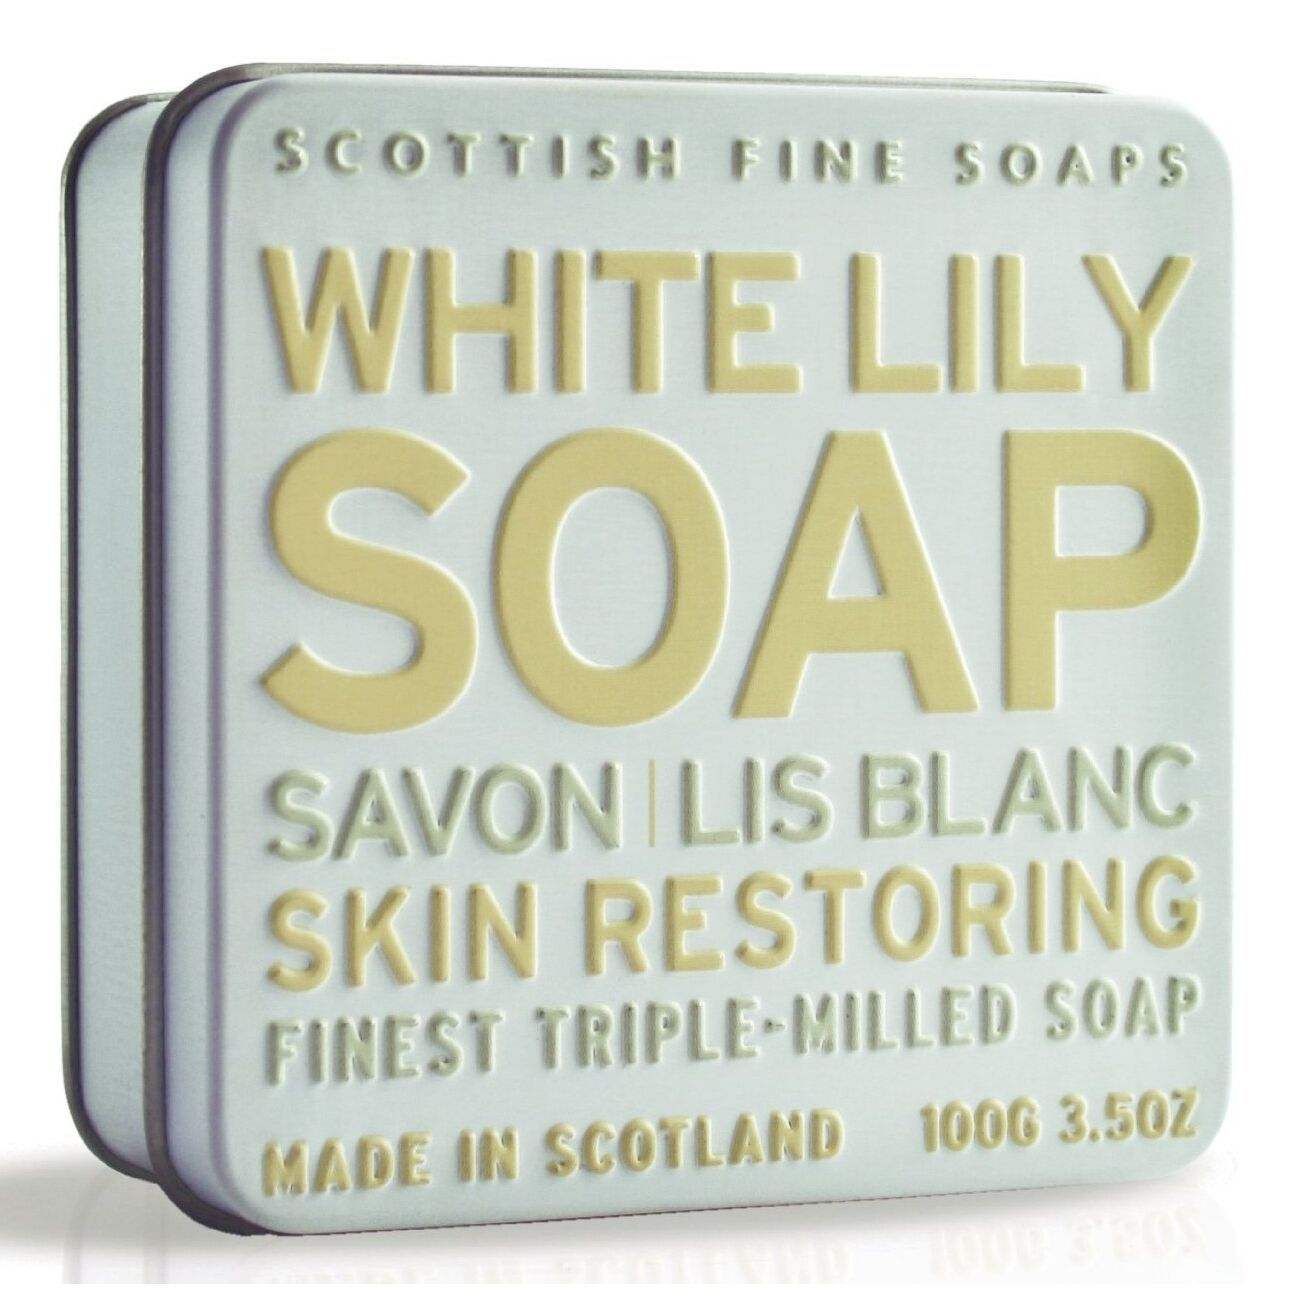 Scottish Fine Soaps Restoring White Lily Soap in a Tin 100g 3.5oz image 1